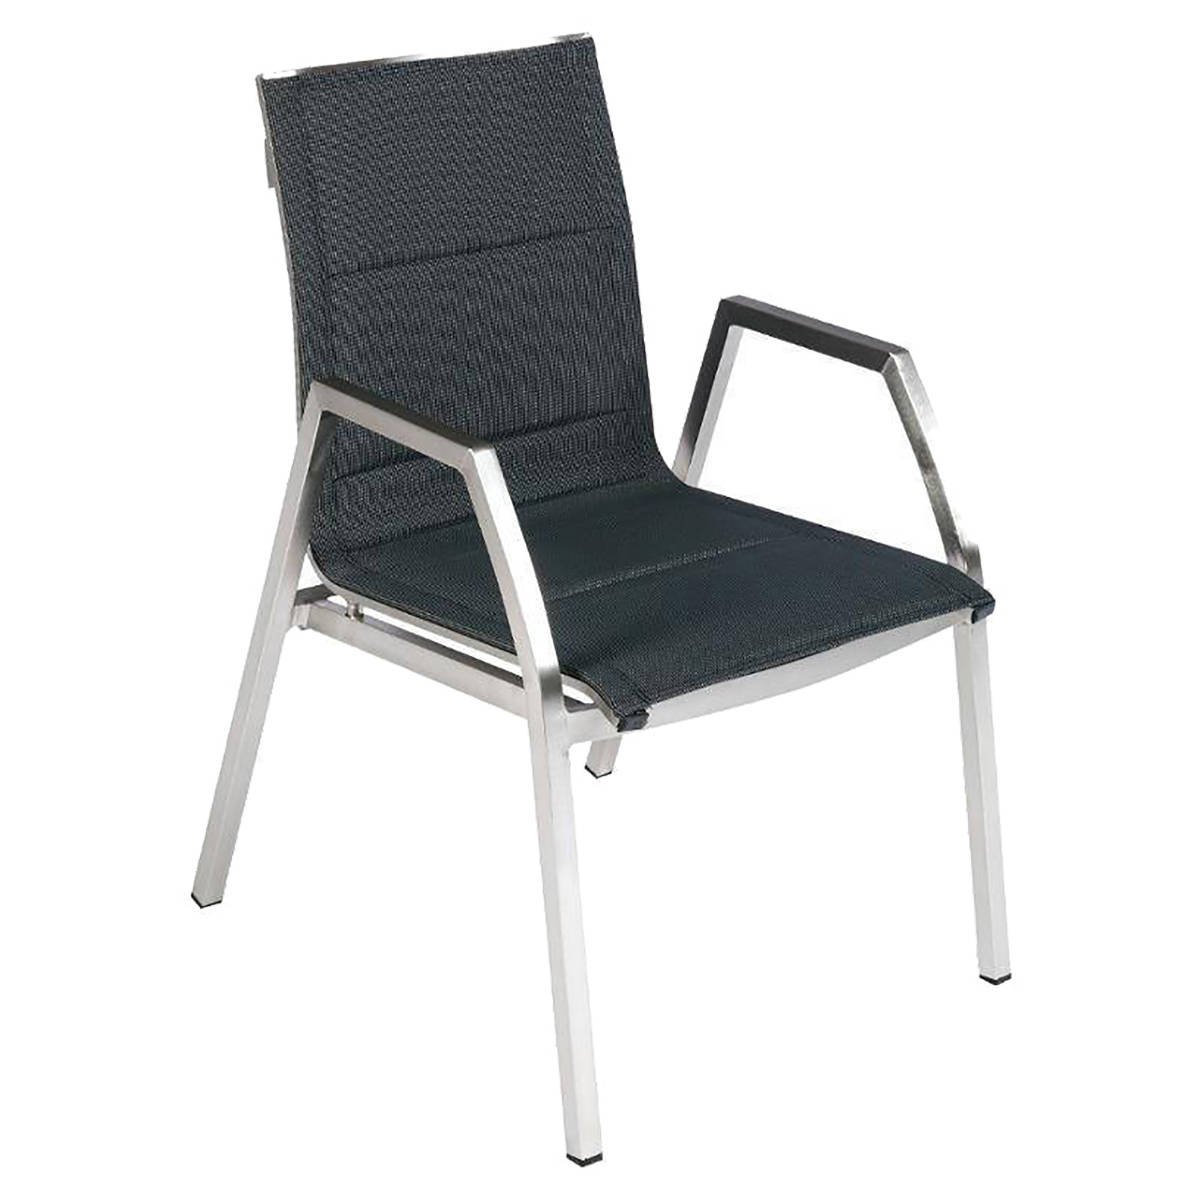 Chaises Exterieures Perfect Stunning With Chaises